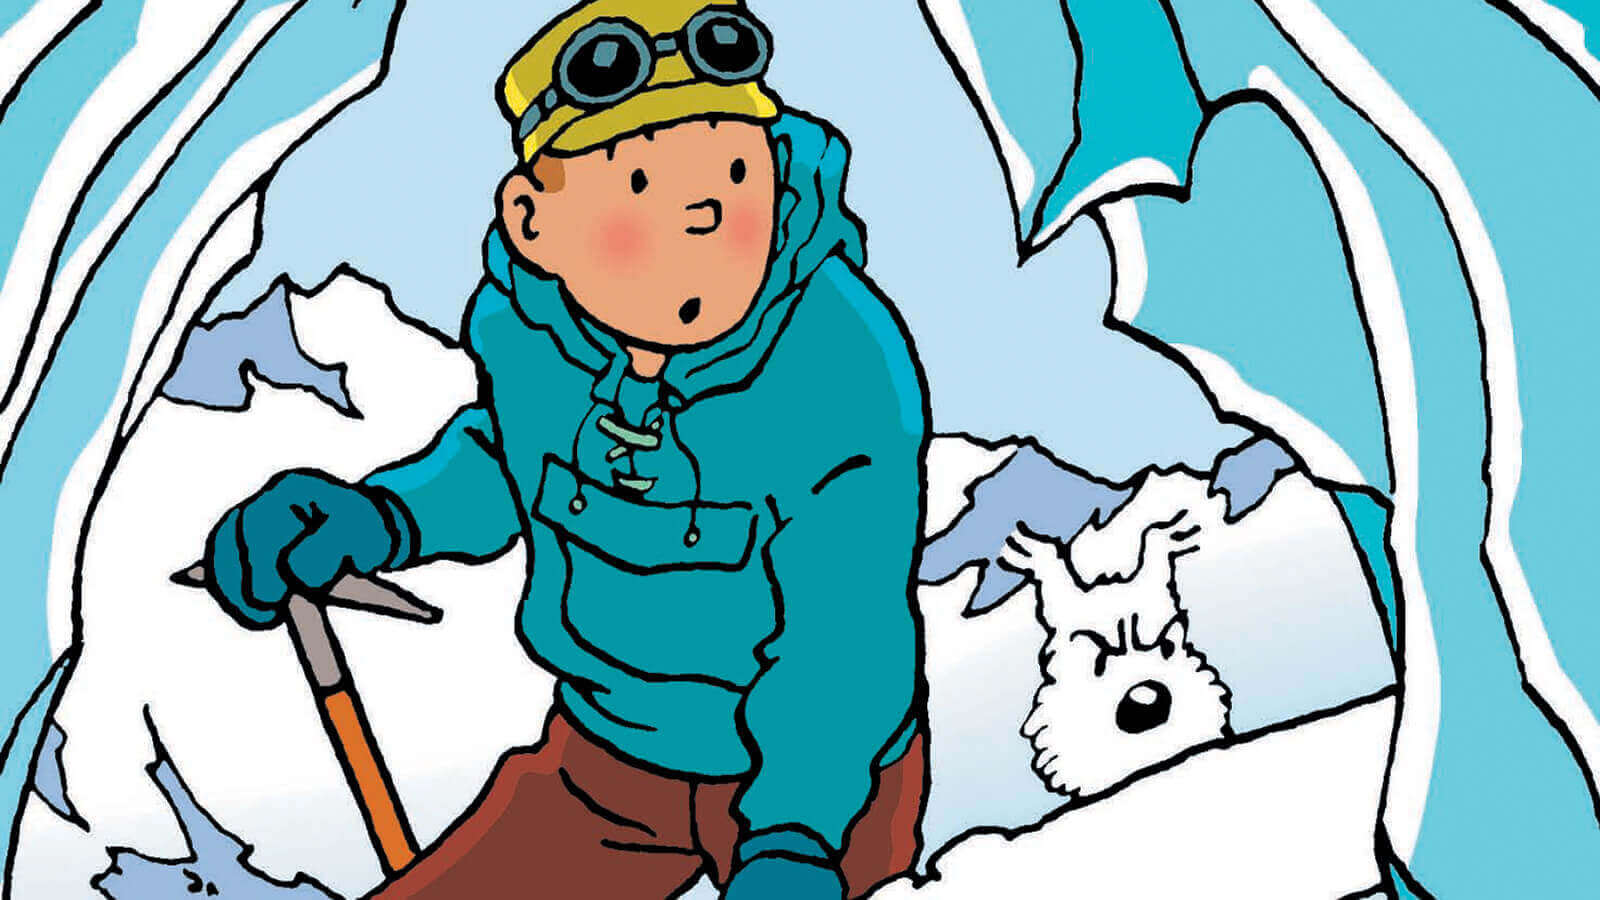 Hergé's Adventures of Tintin Poster Artwork